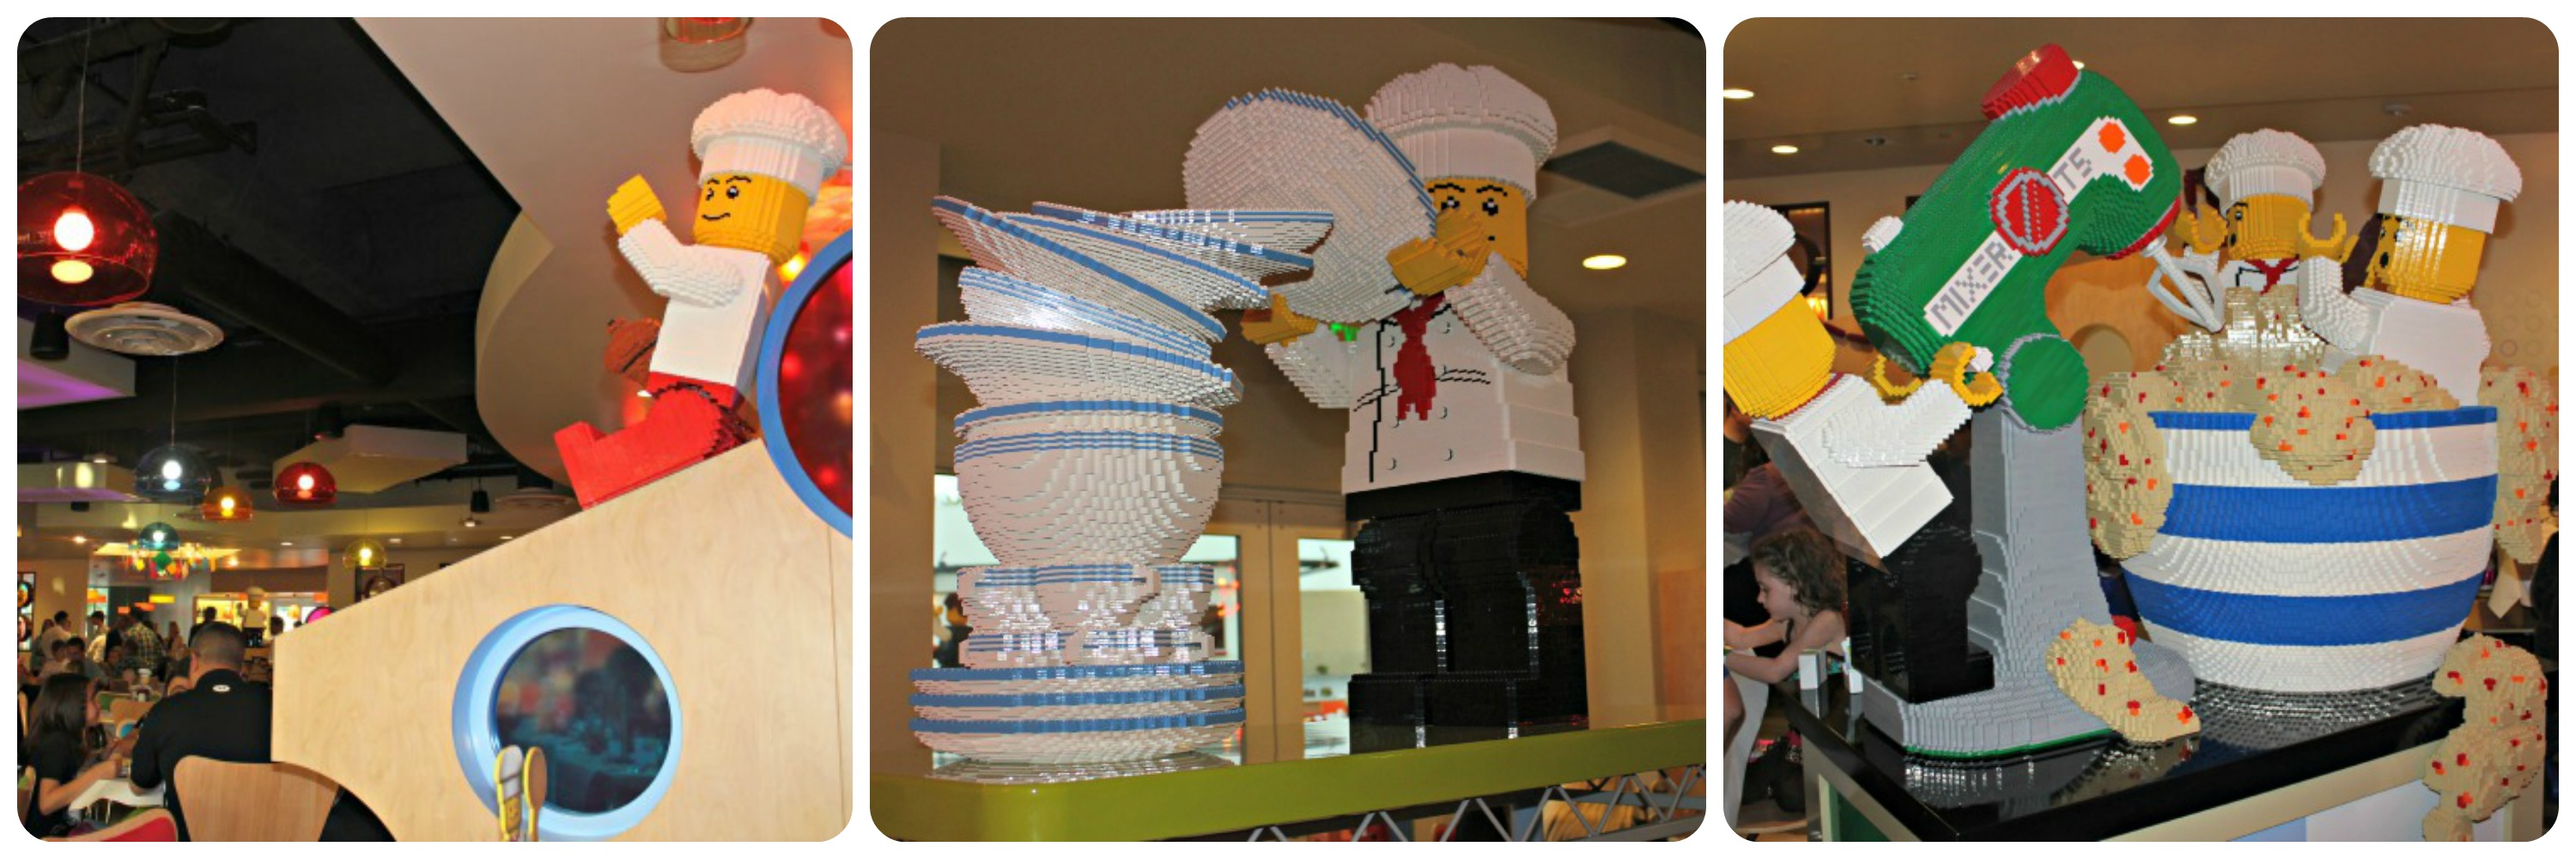 Ultimate Family Dining at Bricks Family Restaurant in the Legoland Hotel